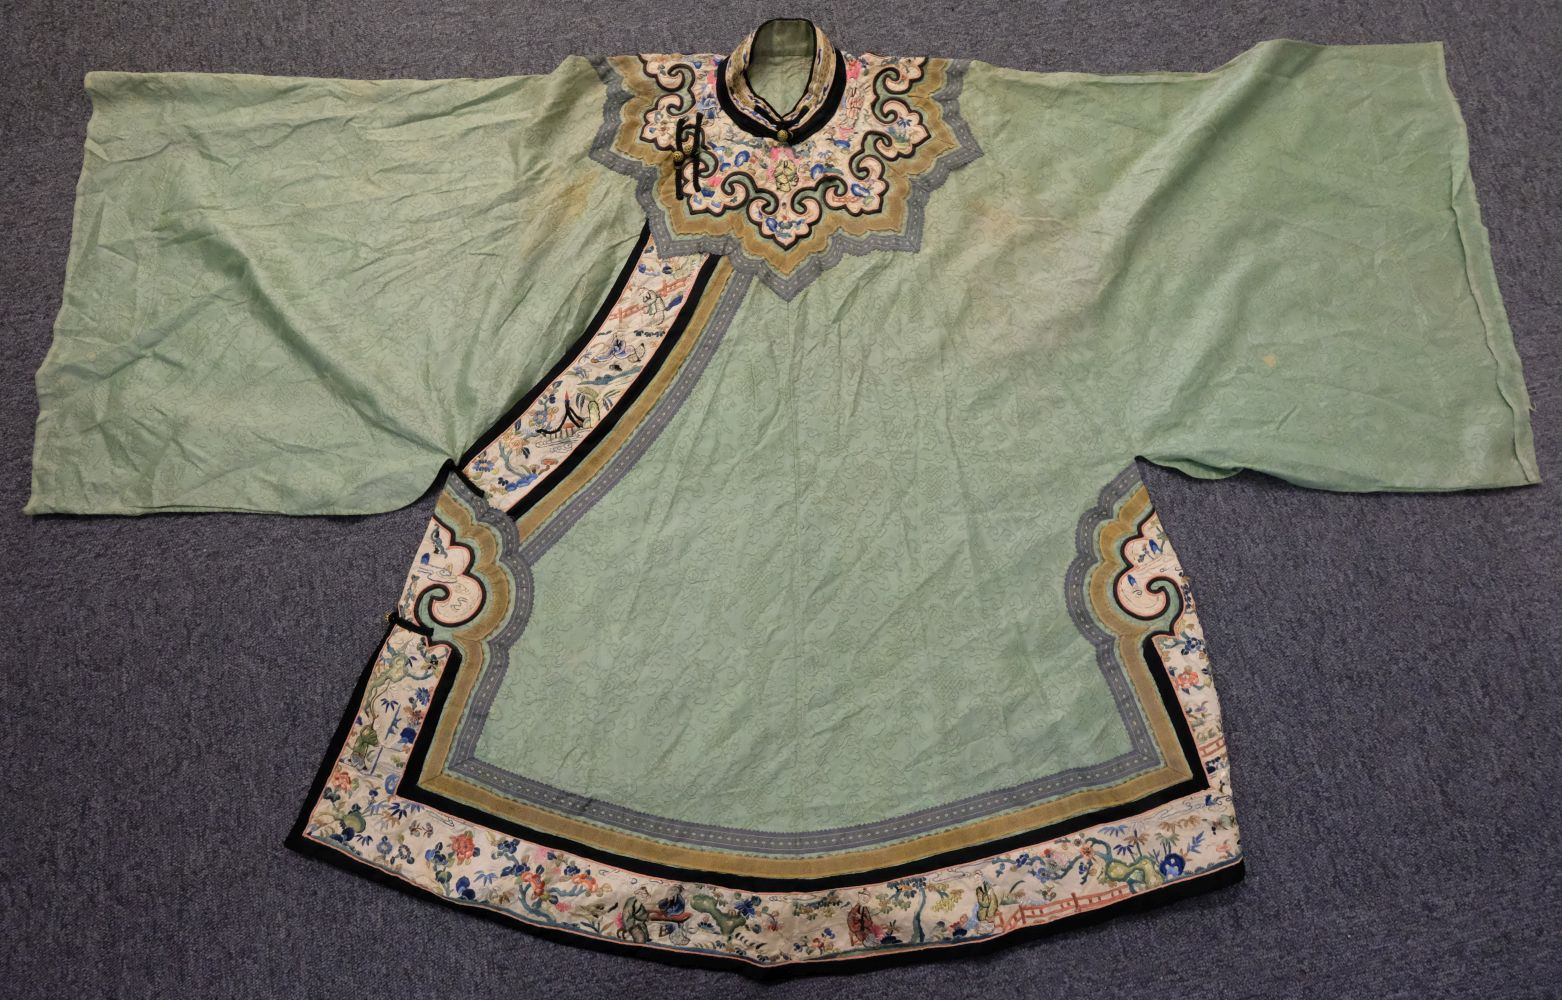 * Chinese. A late Qing Dynasty silk robe, 19th century, - Image 2 of 3